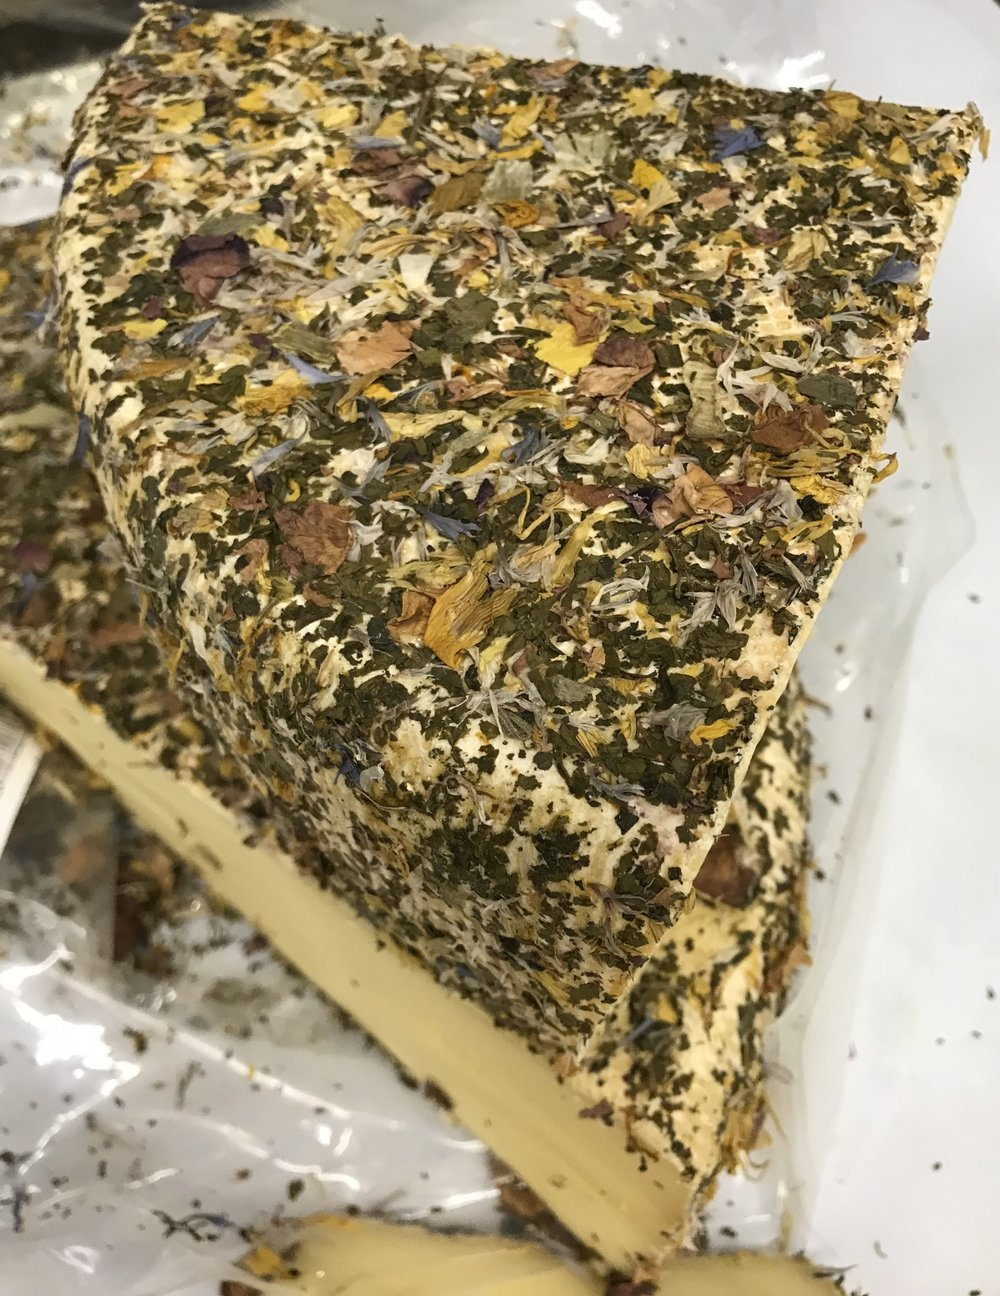 Gorgeous and delicious Hay Flower cheese available now at Russo's!